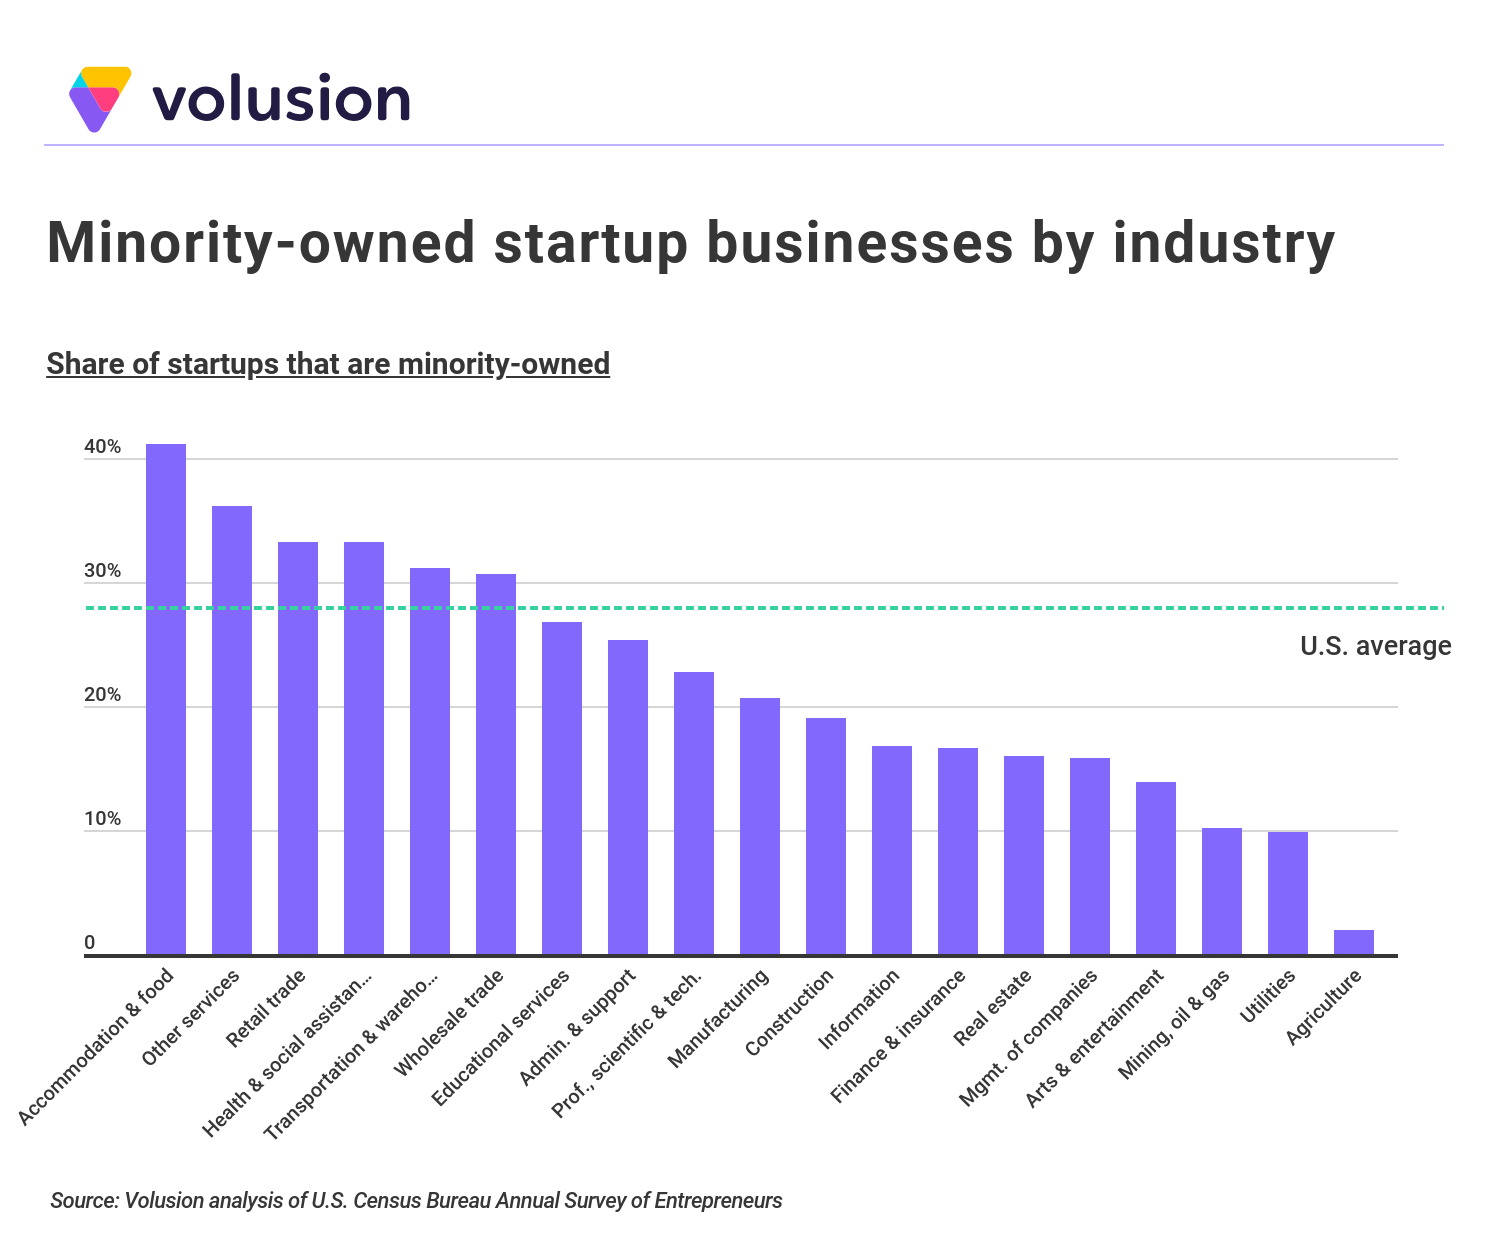 Bar graph showing percentage of minority-owned startup businesses by industry, compared against the U.S. average